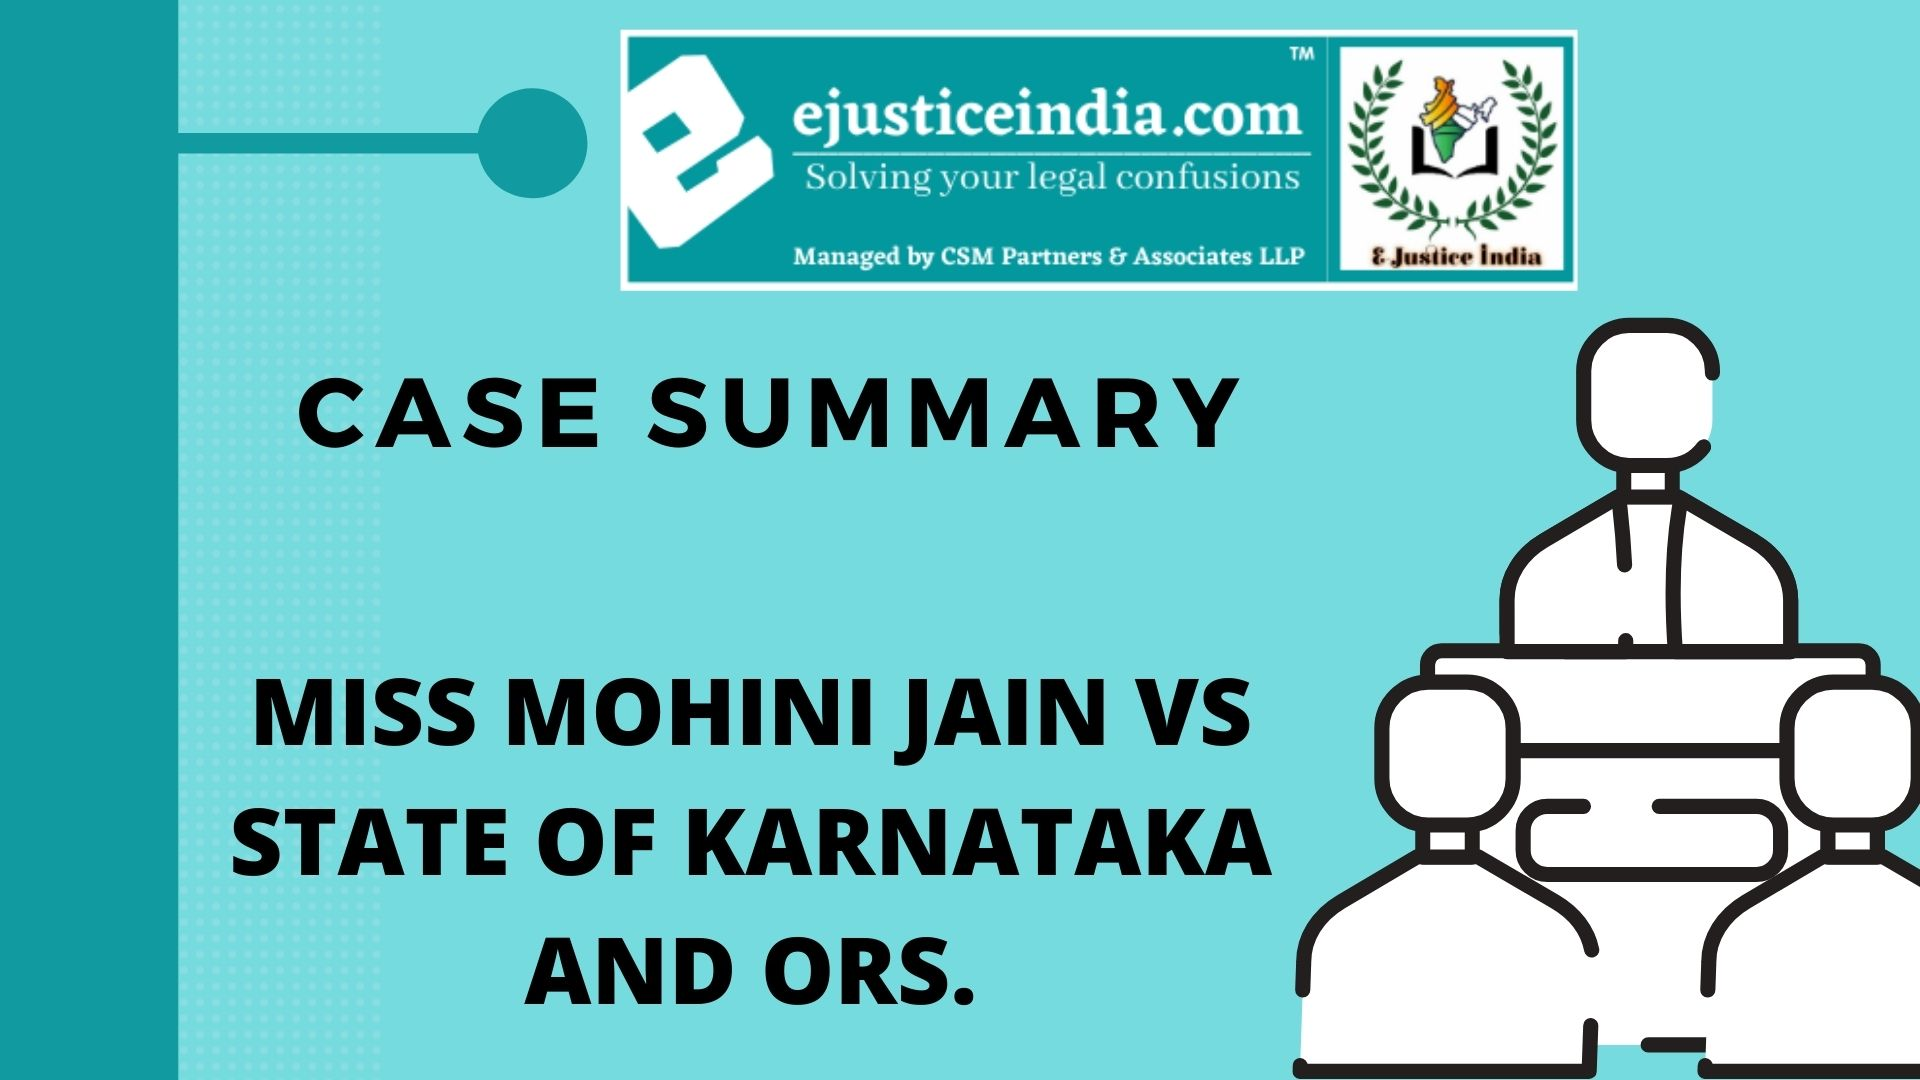 MISS MOHINI JAIN VS STATE OF KARNATAKA AND ORS